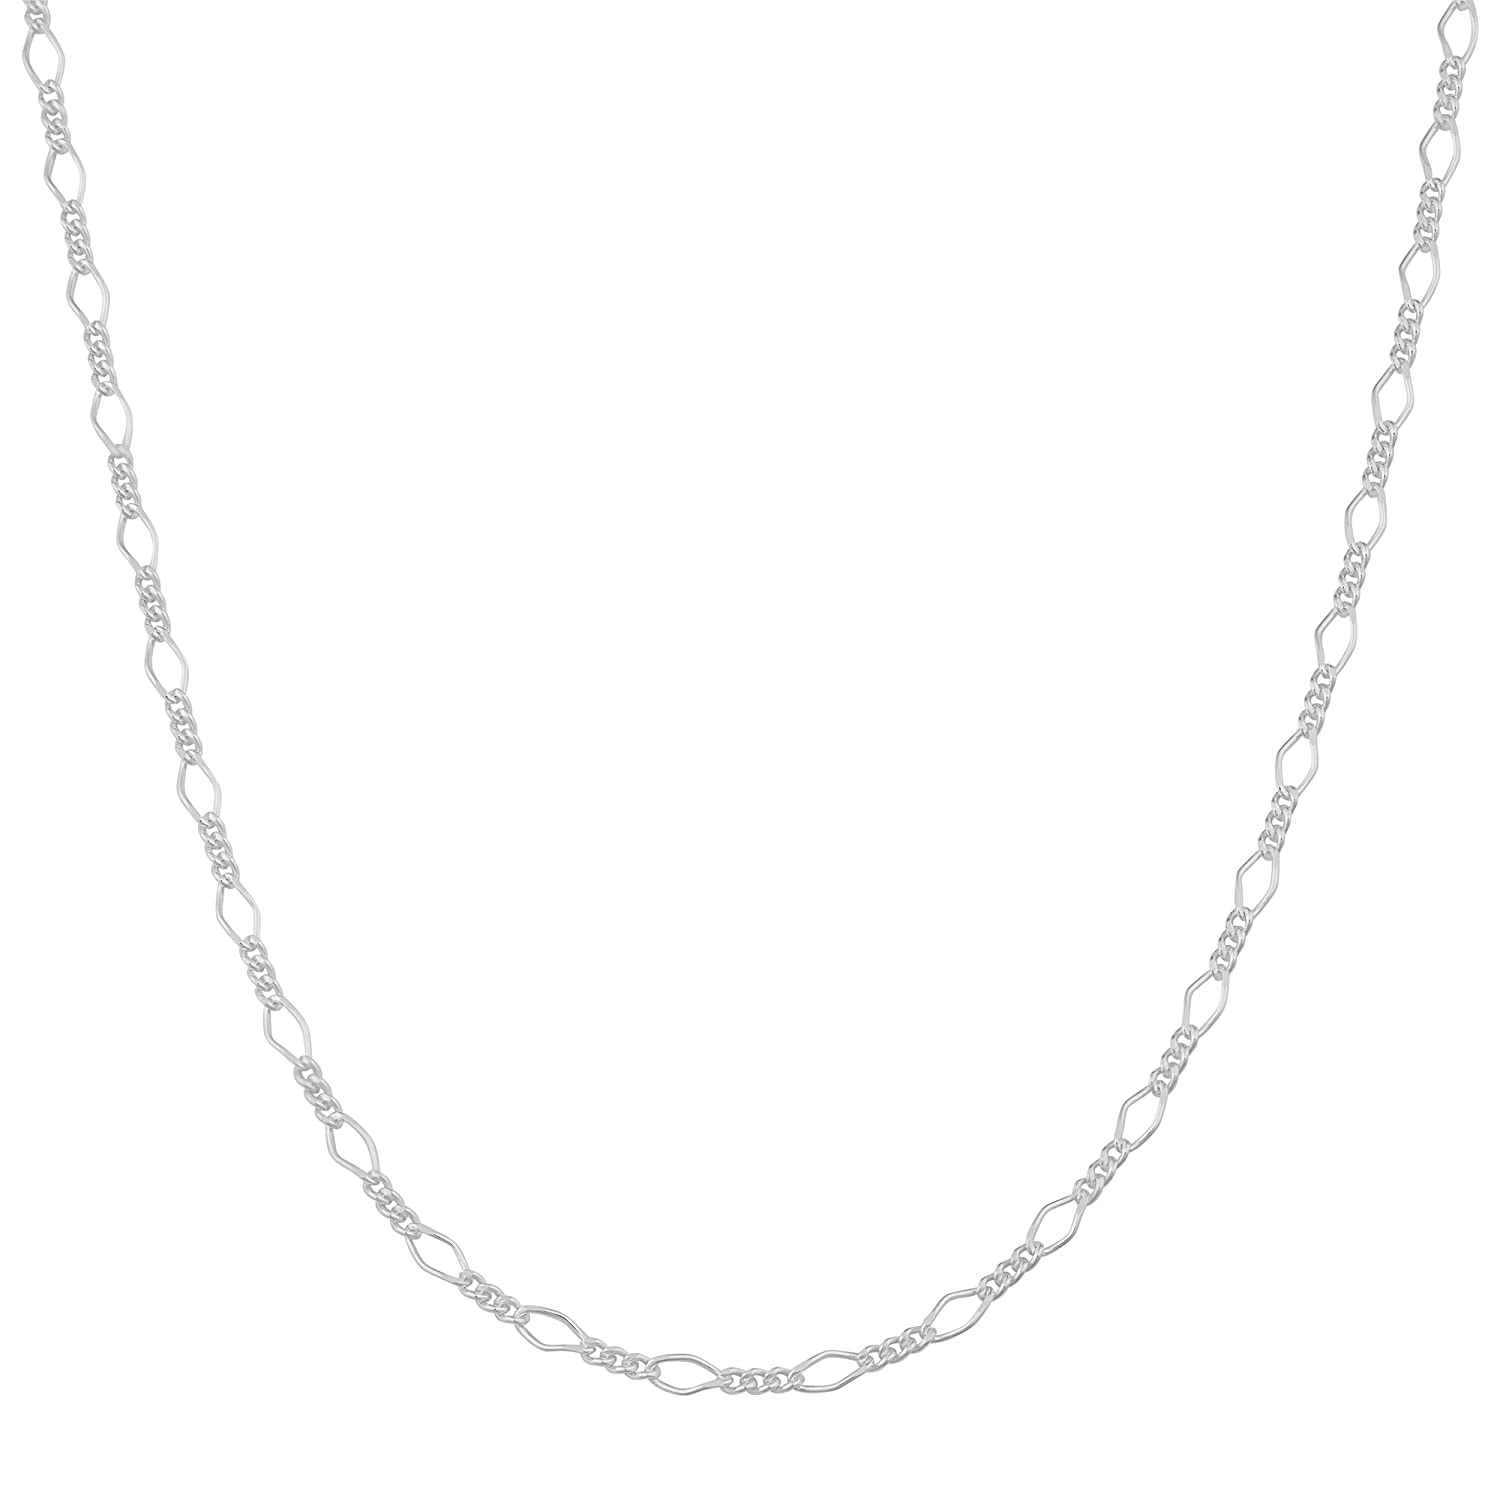 16, 18, 20, 22, 24, 30, or 36 inch Kooljewelry Sterling Silver 2.1 mm Polish Figaro Chain Necklace